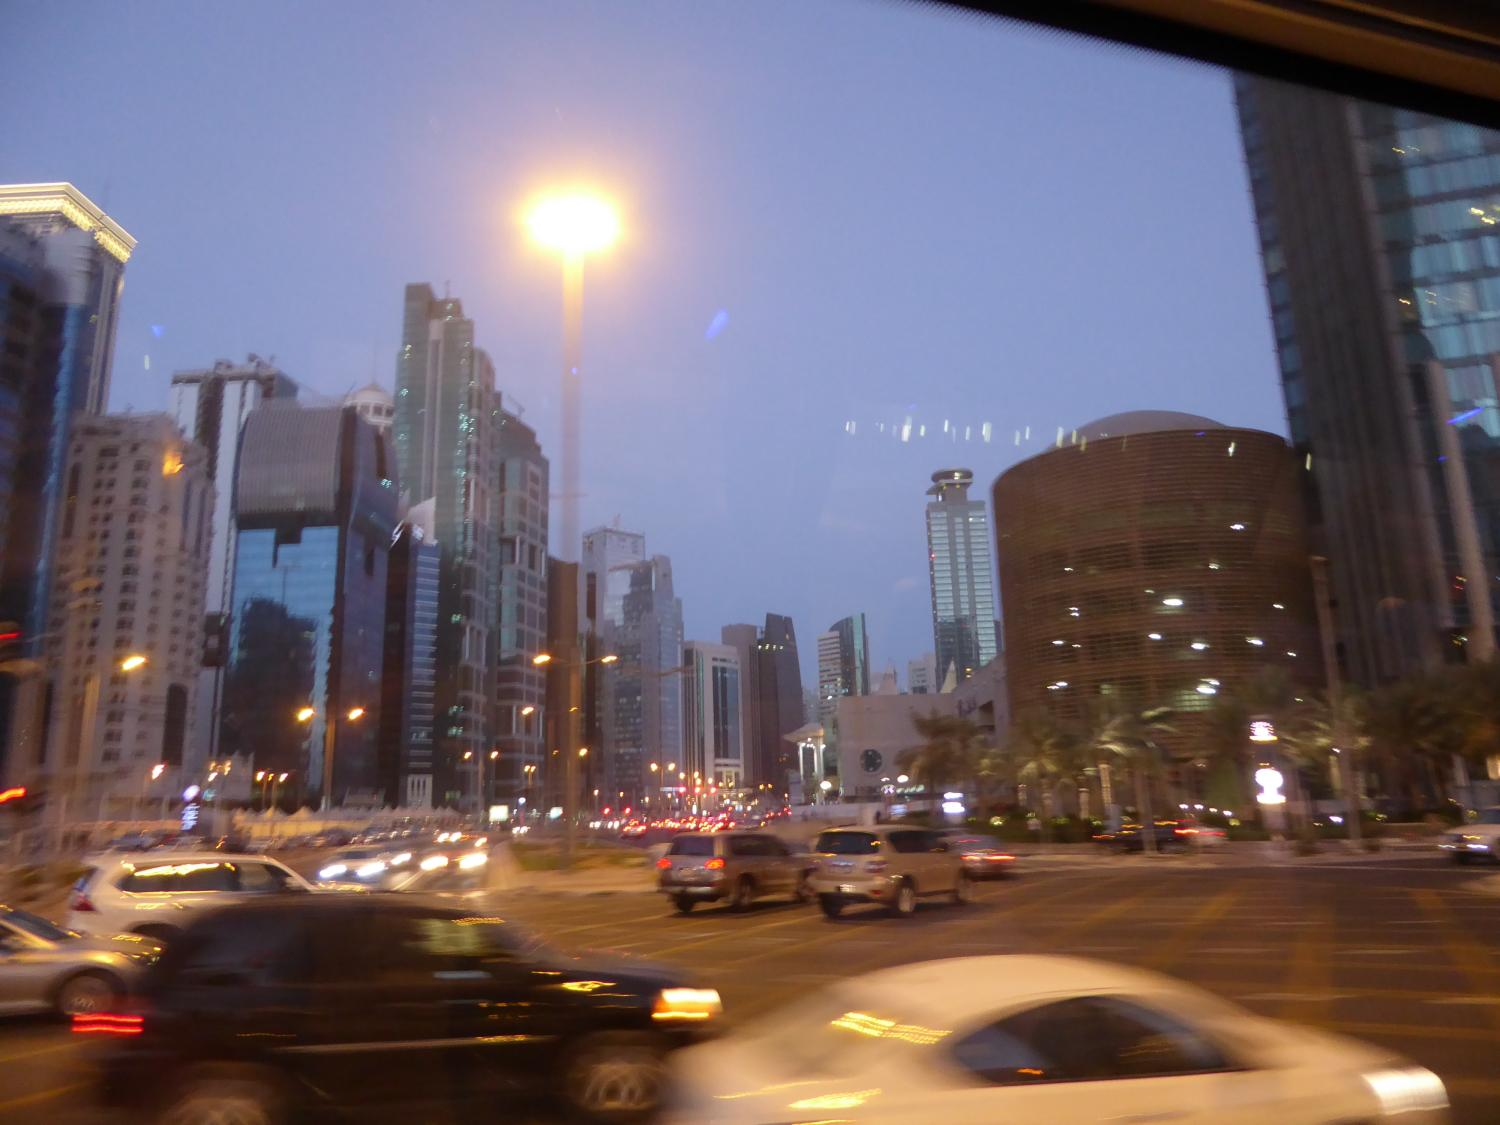 Abend in Doha